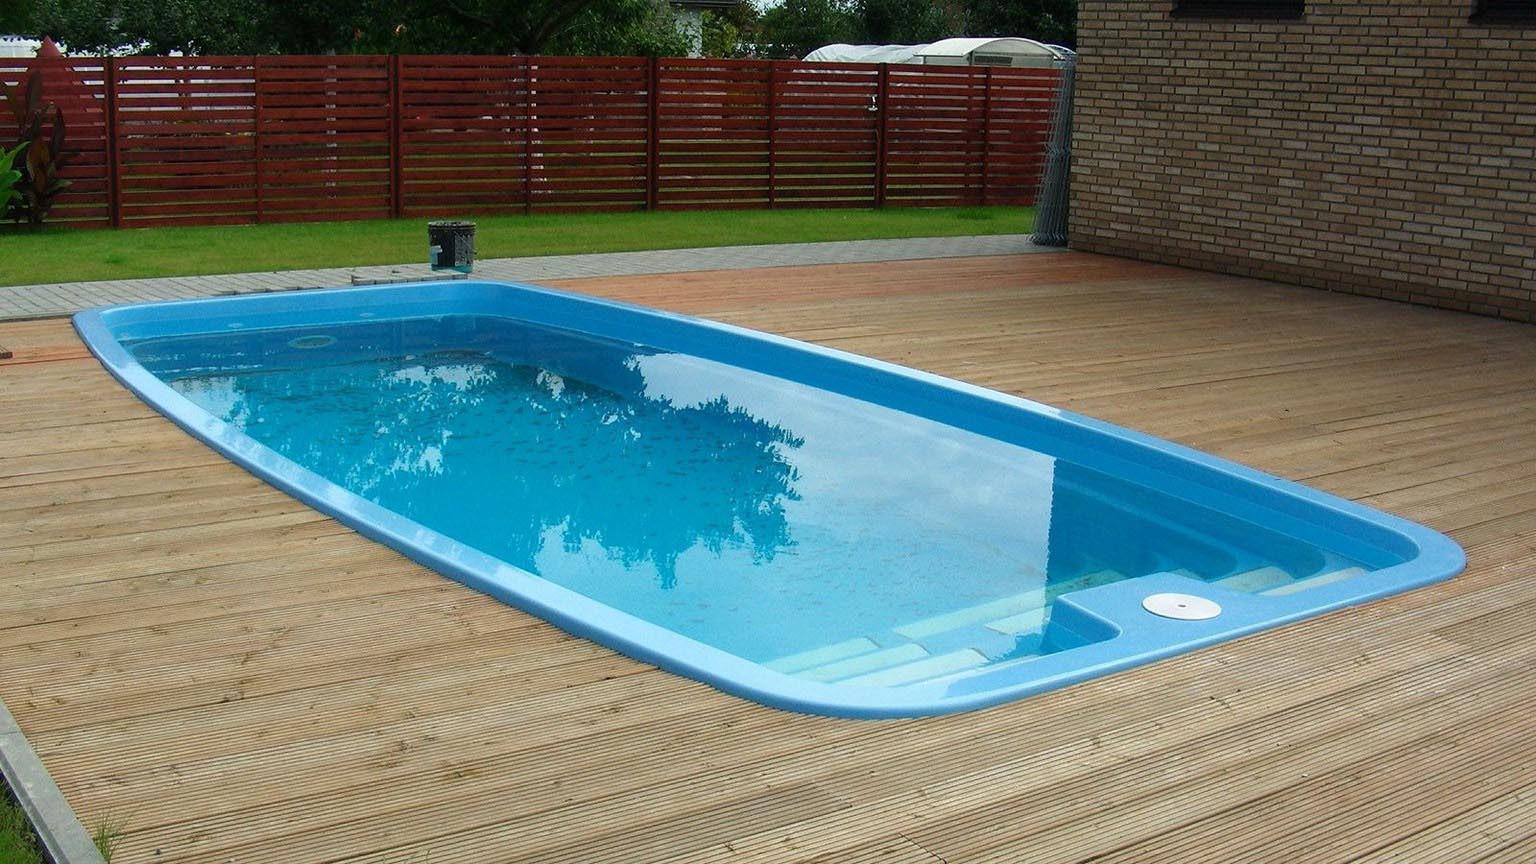 mini swimming pool pictures photo - 3